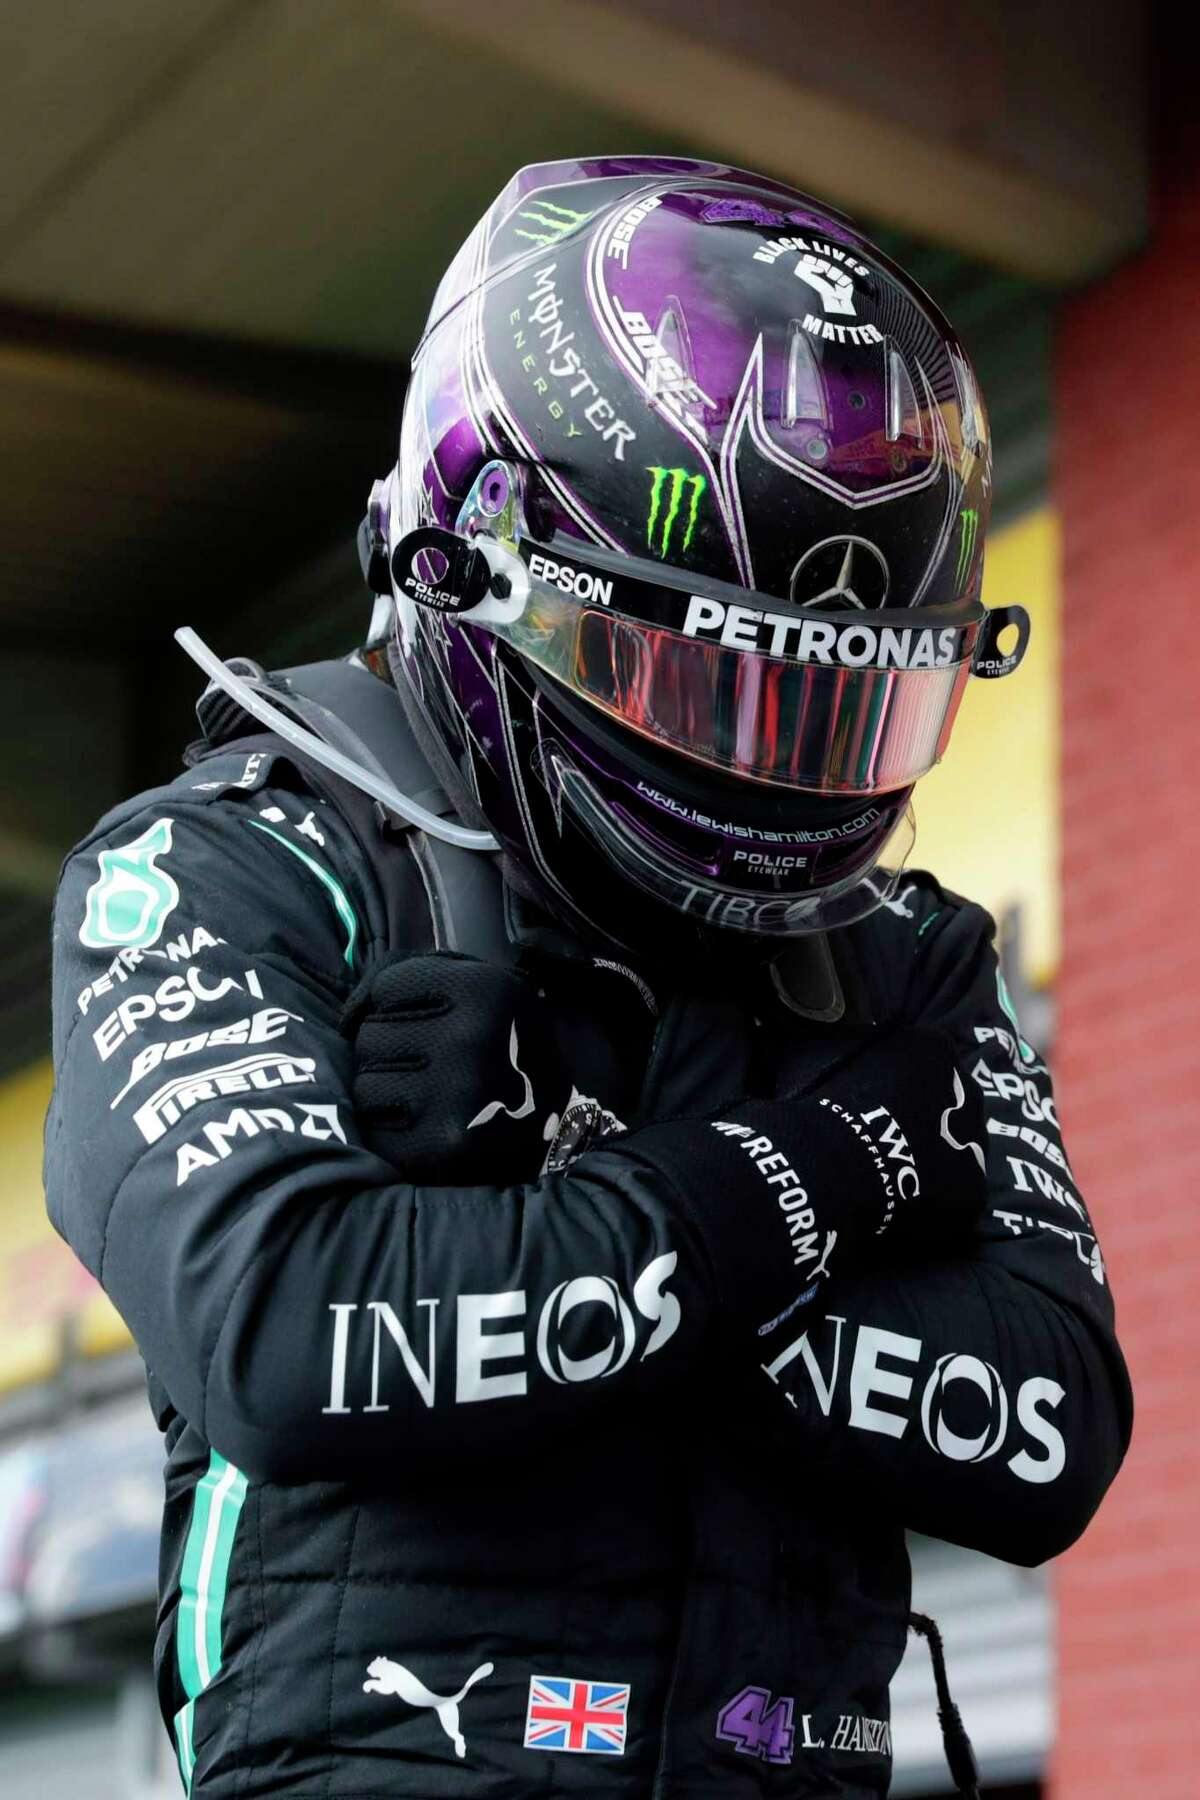 Mercedes' British driver Lewis Hamilton gestures at the end of the race of the Belgian Formula One Grand Prix at the Spa-Francorchamps circuit in Spa on August 30, 2020. (Photo by Stephanie Lecocq / POOL / AFP) (Photo by STEPHANIE LECOCQ/POOL/AFP via Getty Images)